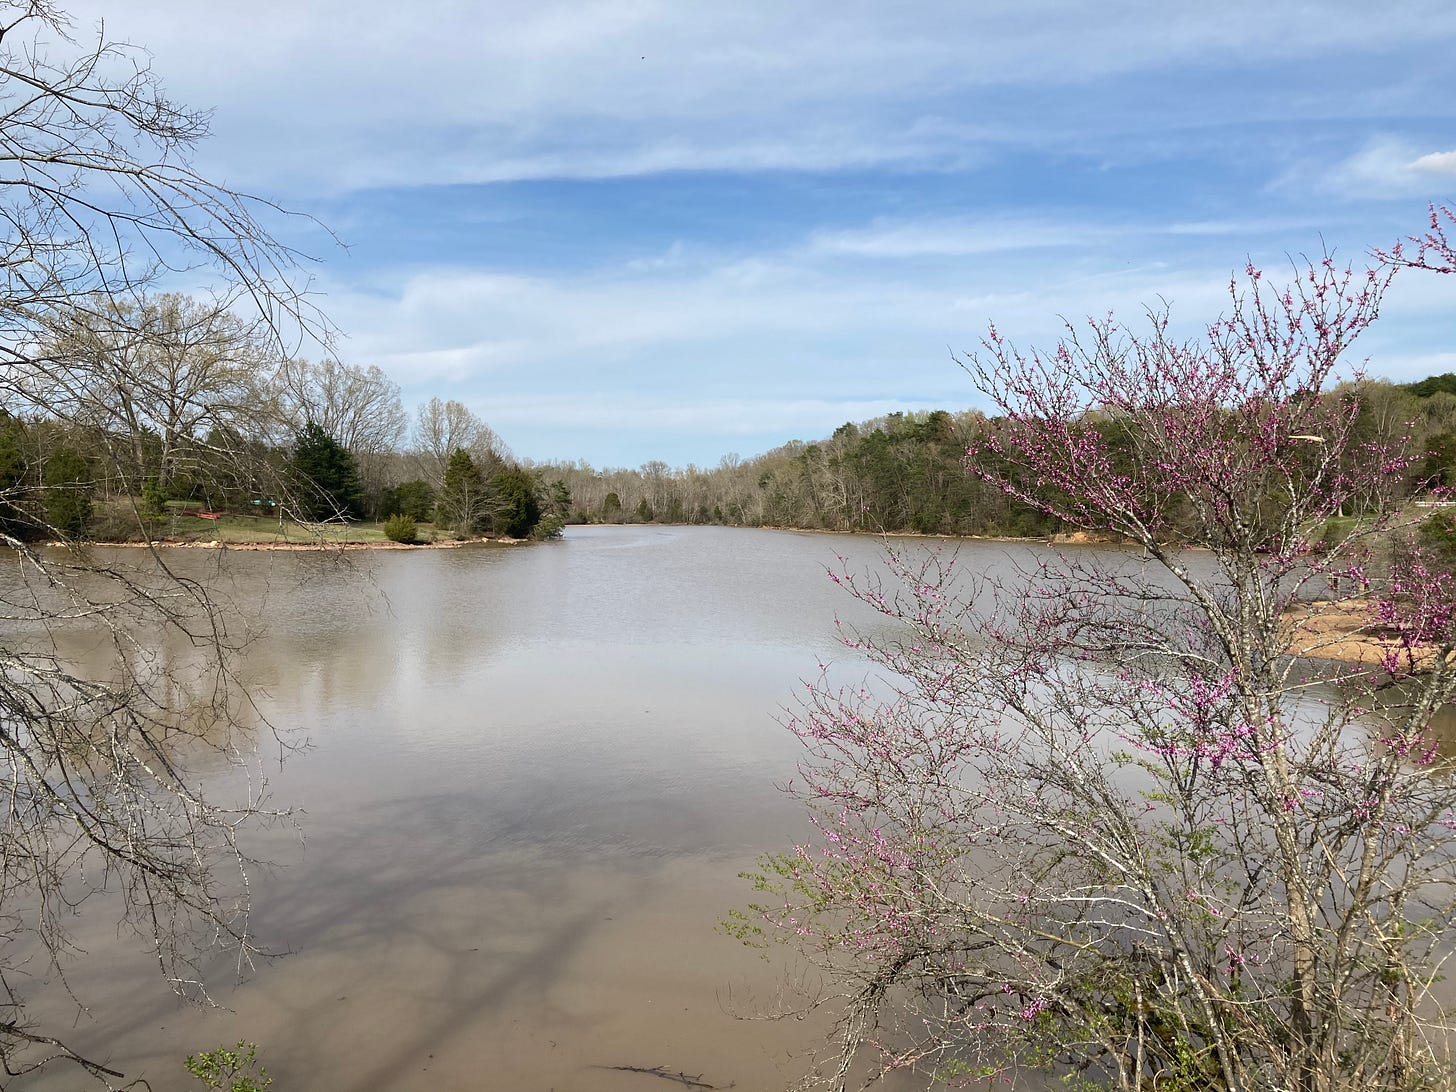 redbuds starting to bloom over a muddy river